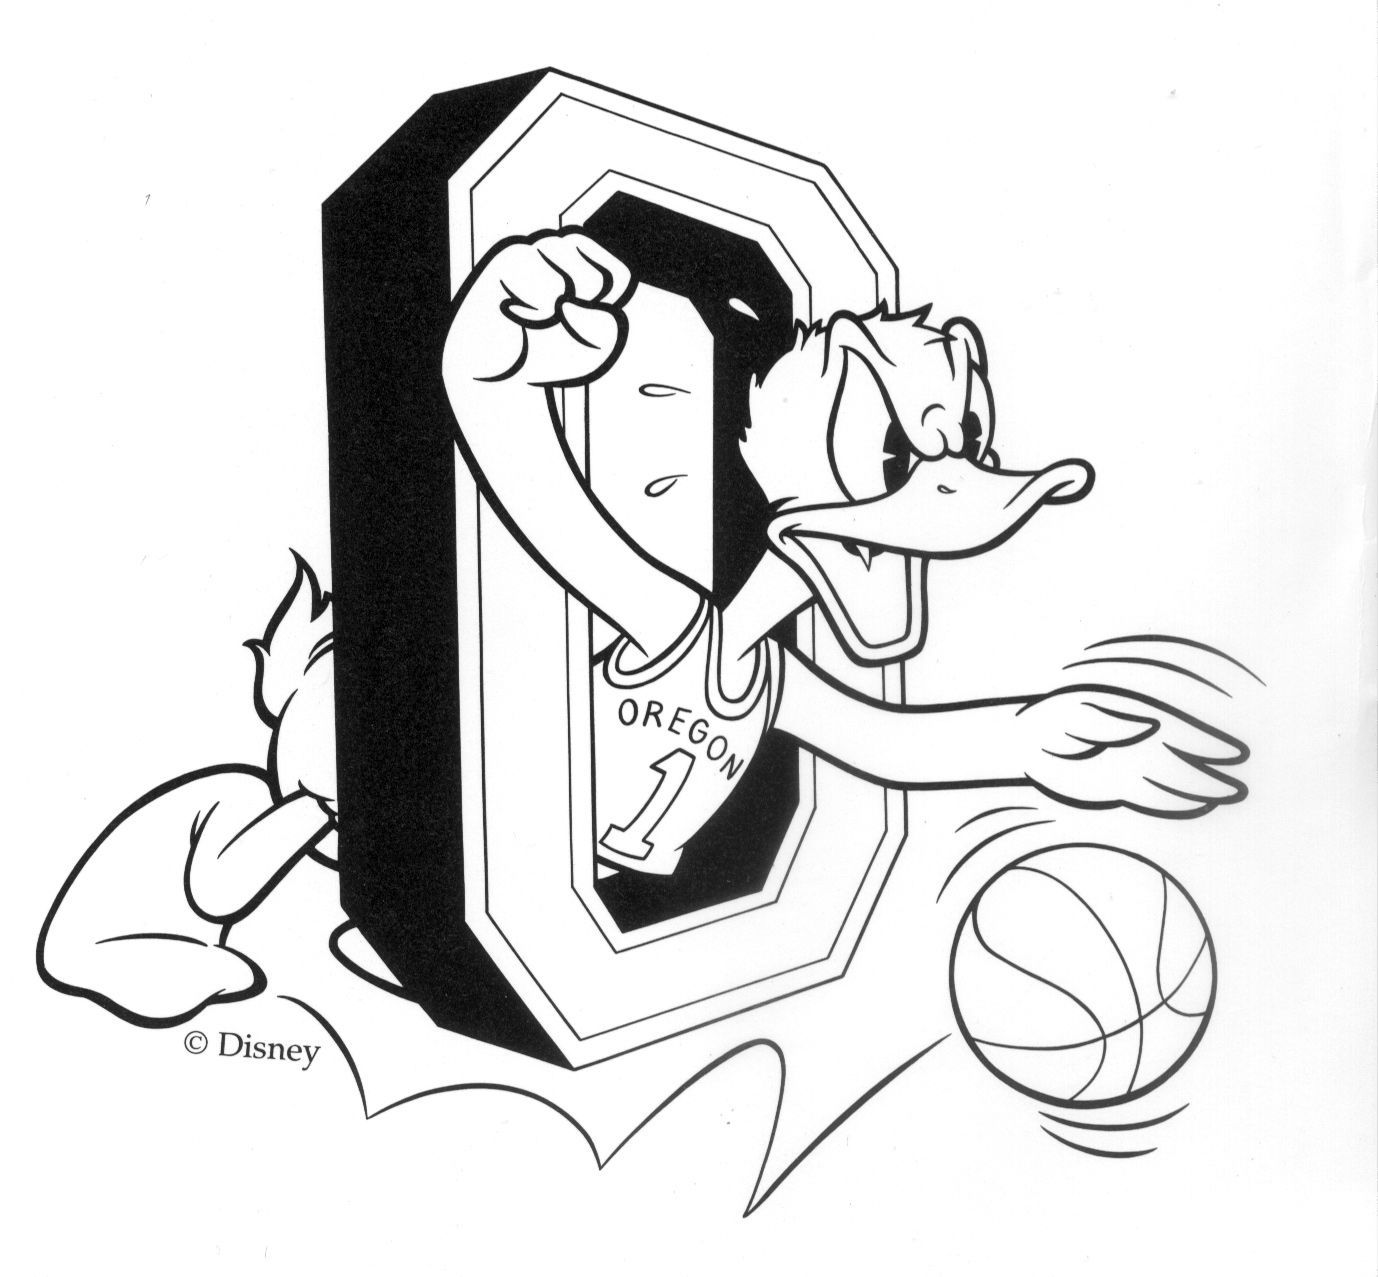 Old Basketball Logo - Old school basketball logo | The Duck & Friends | Pinterest ...